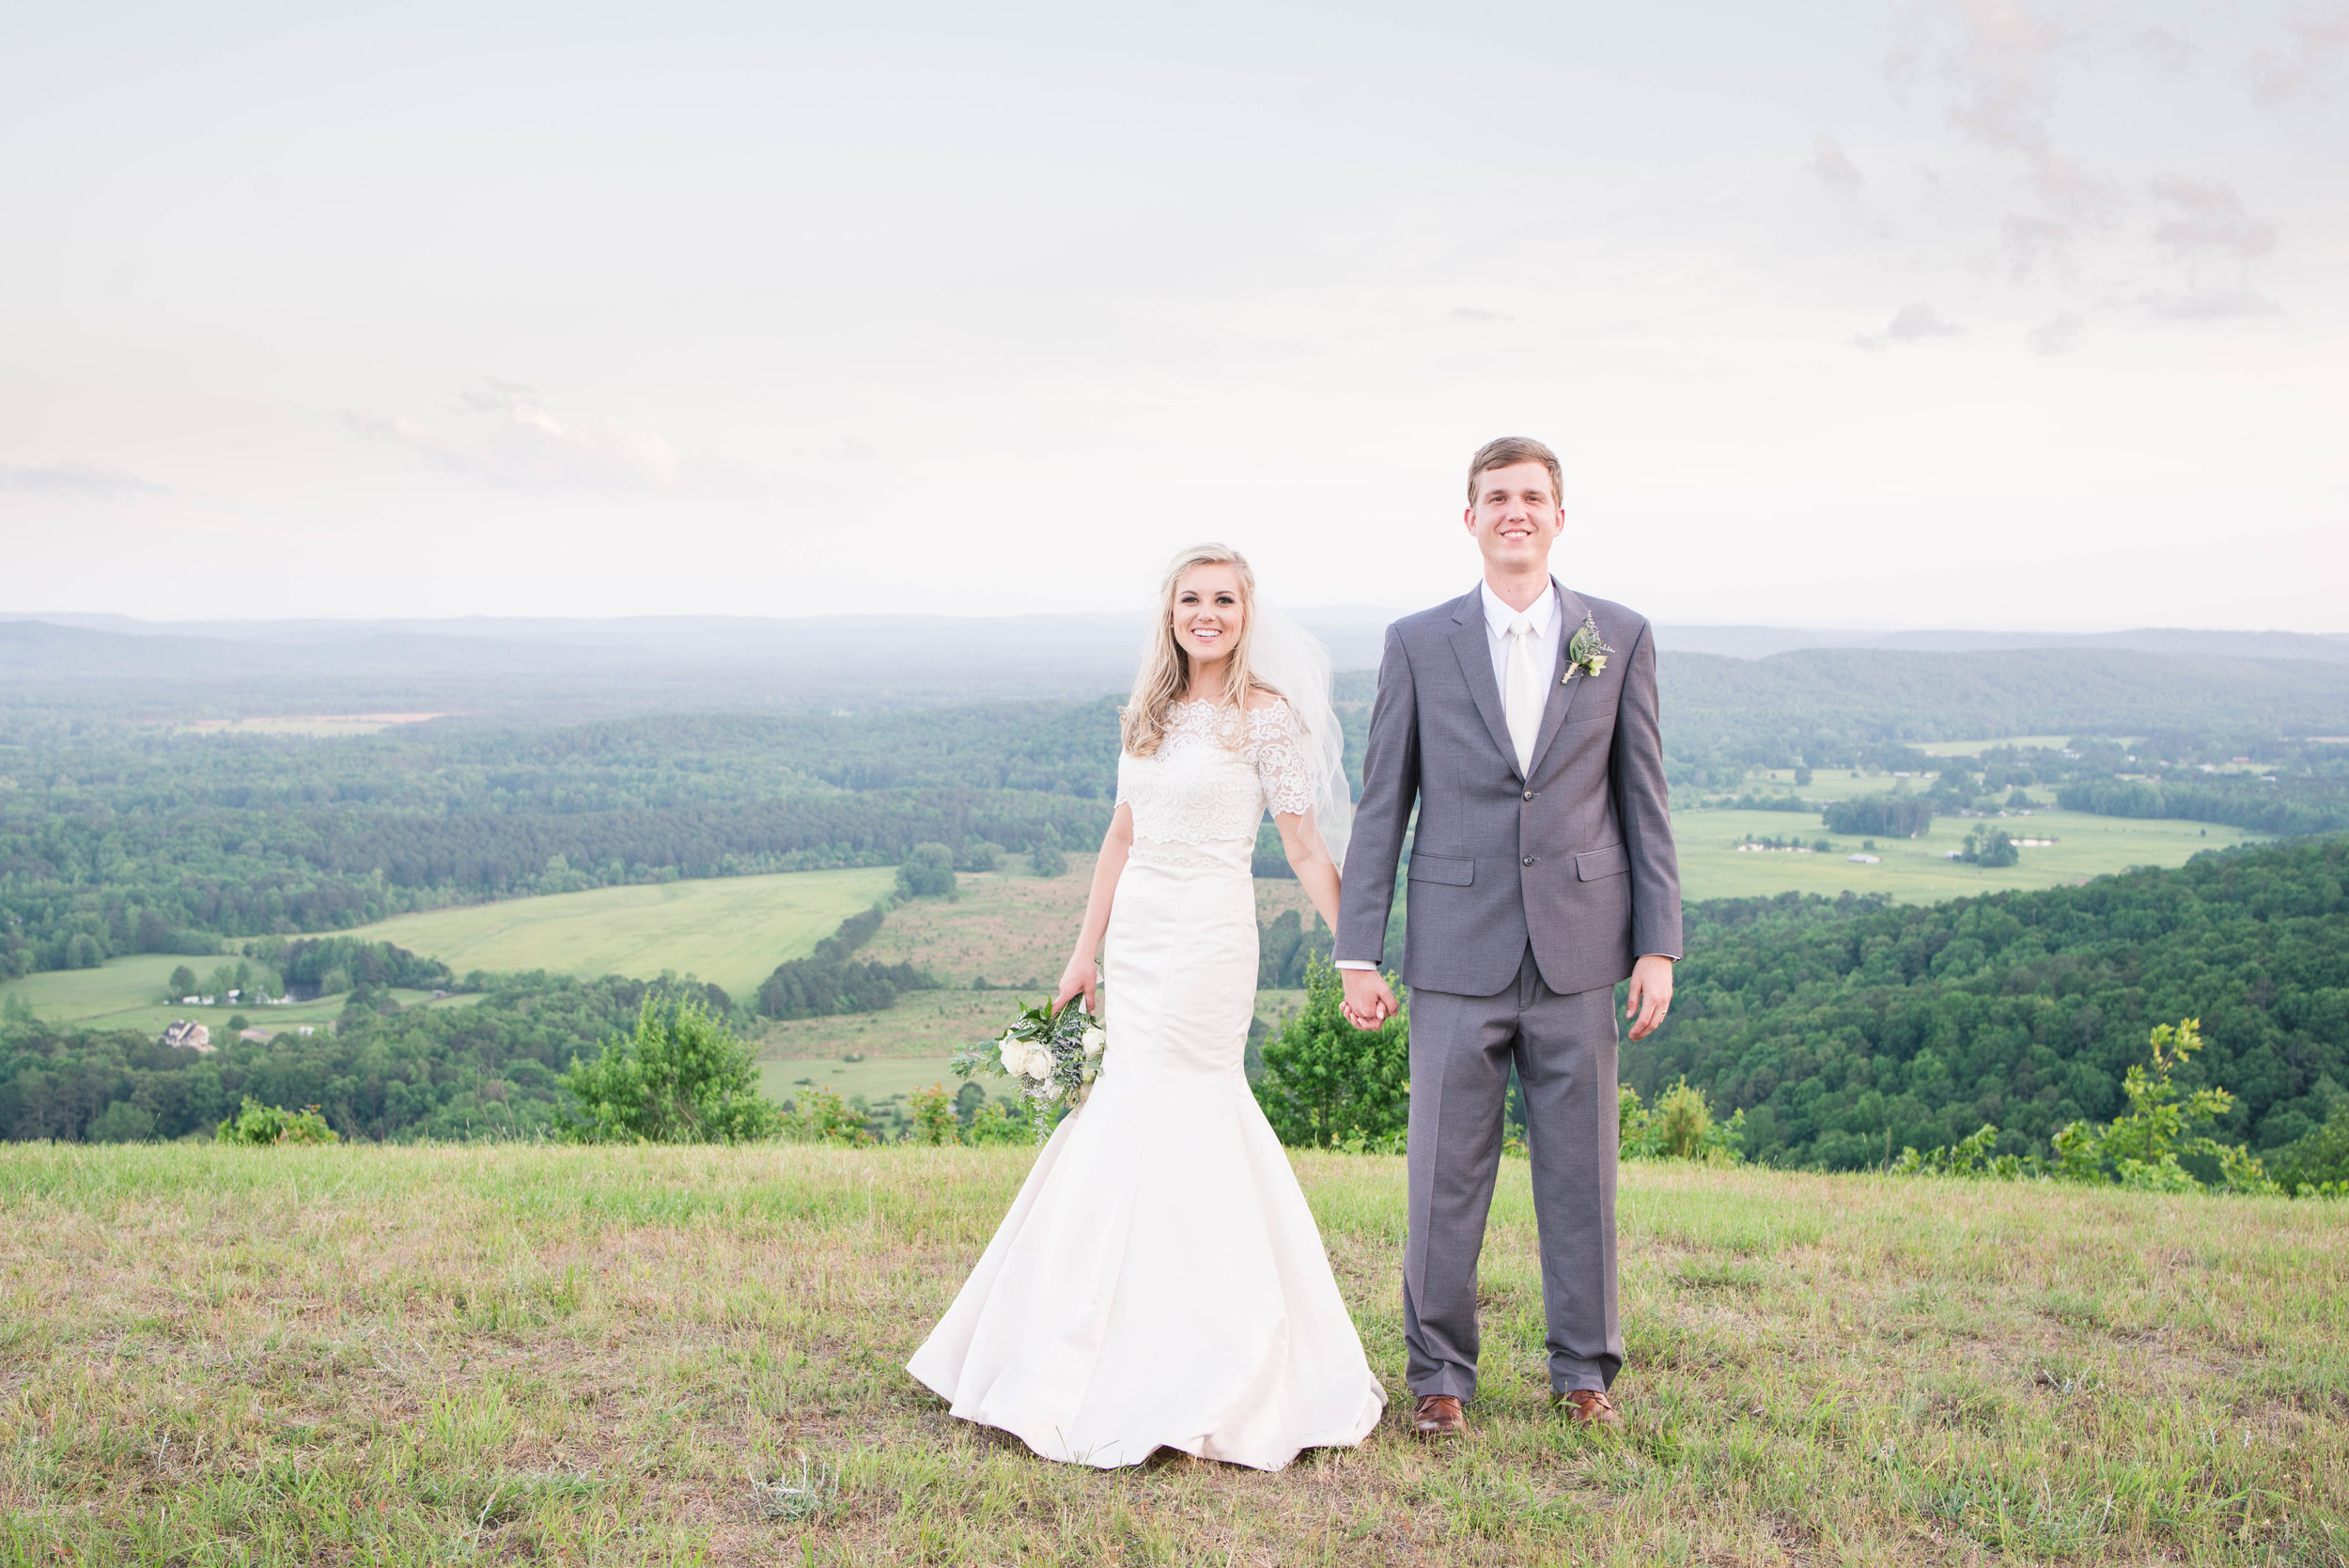 Chandler & Nathan Birmingham Alabama April Wedding